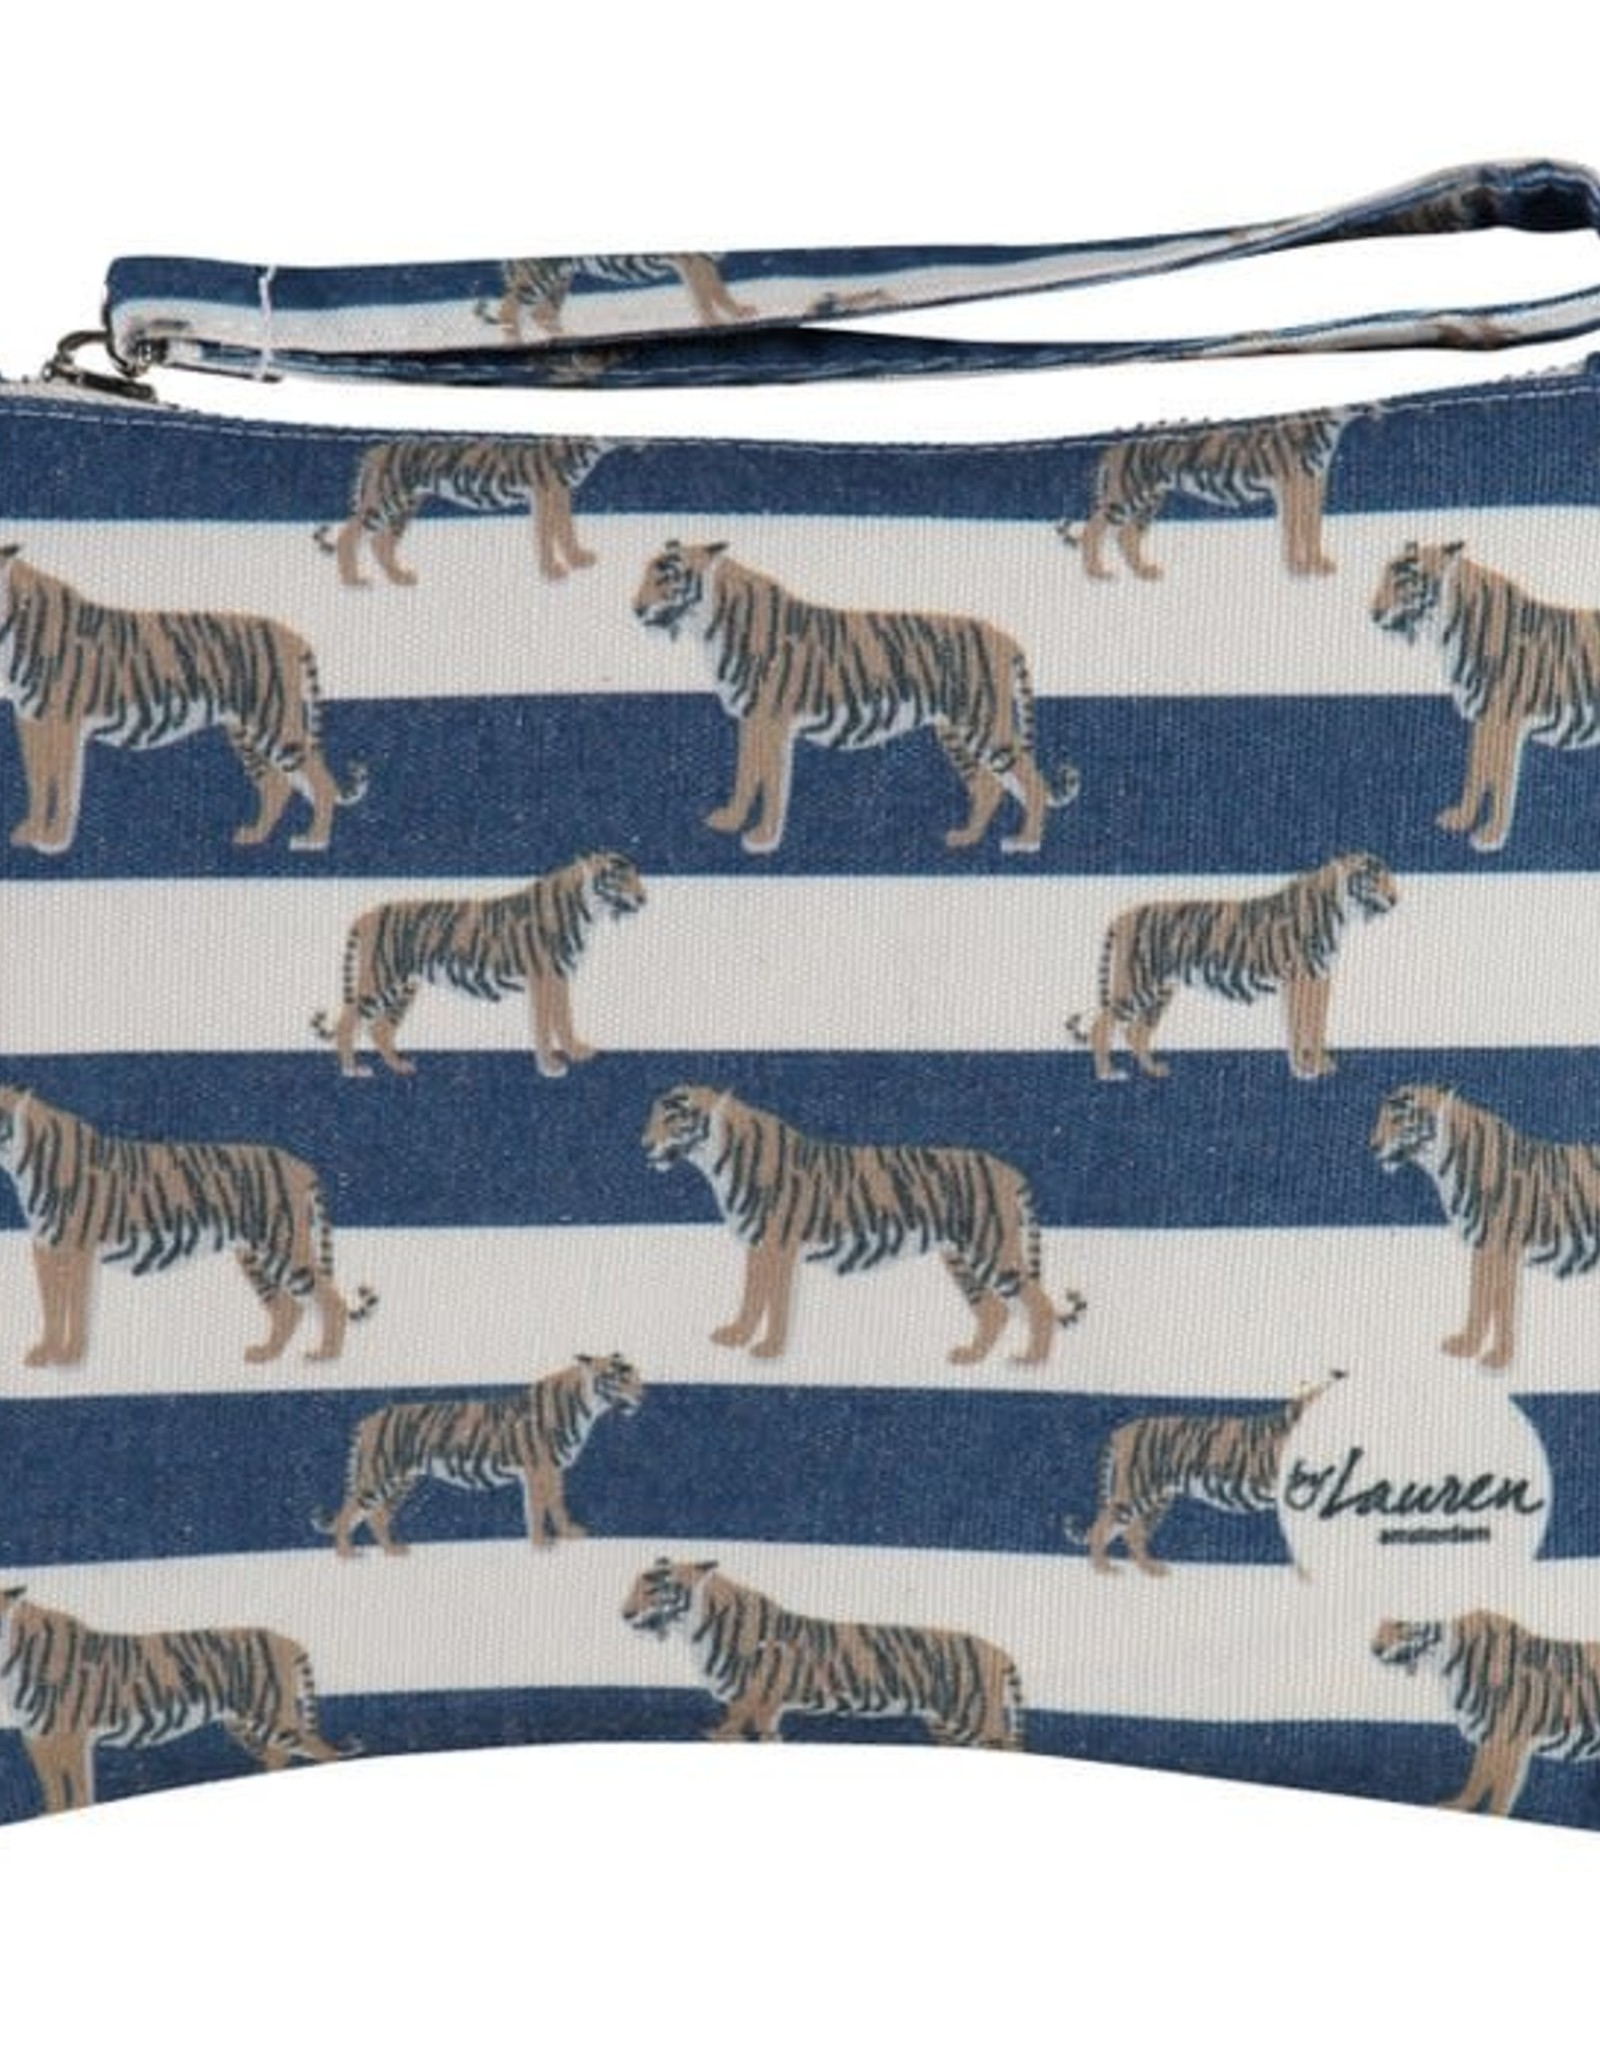 By lauren Amsterdam By Lauren Amsterdam tigers and stripes royal navy clutch